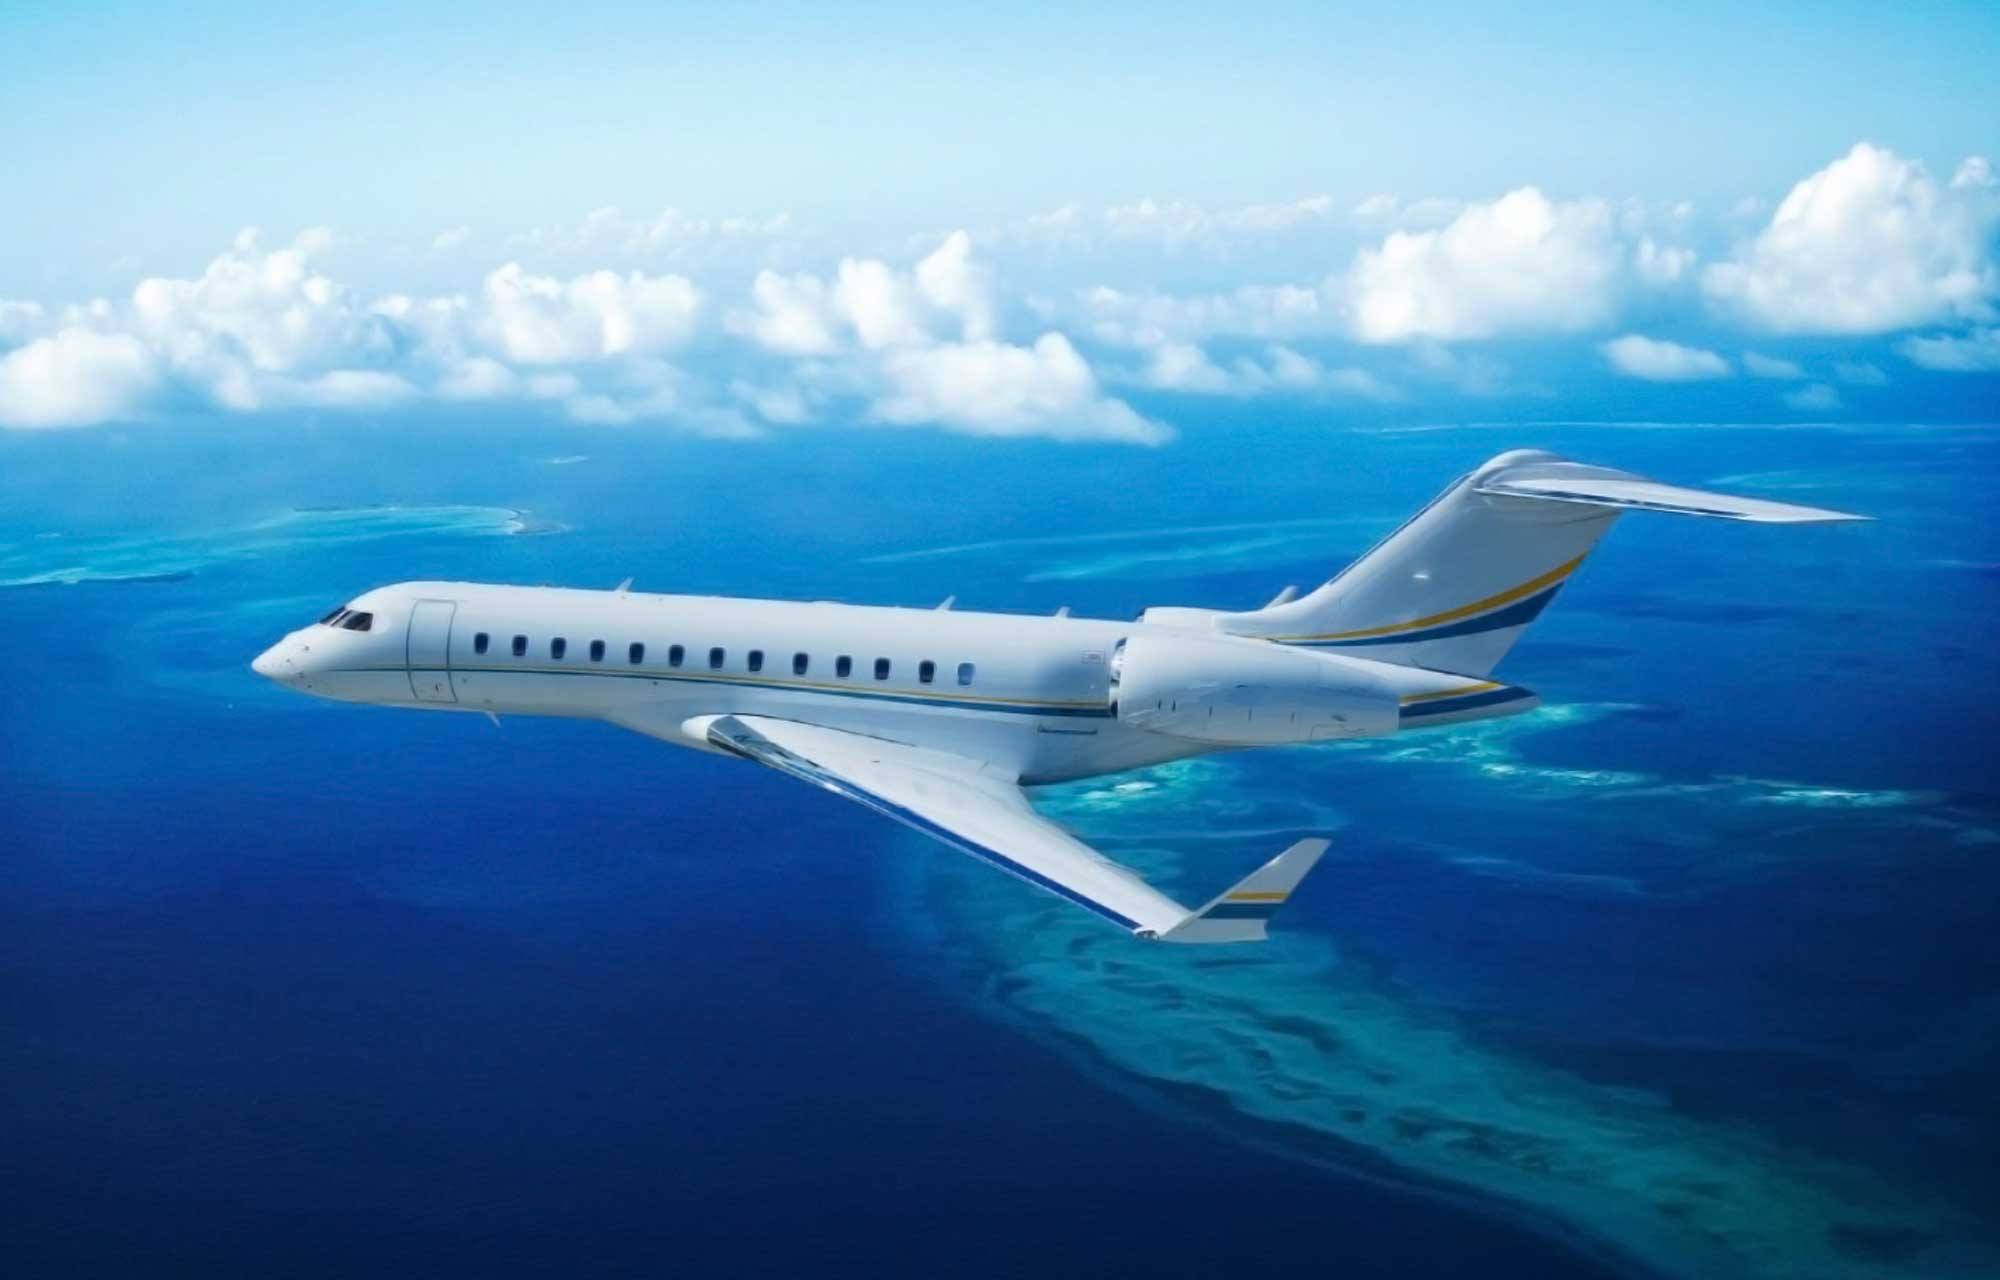 Related model: Bombardier Global 6000